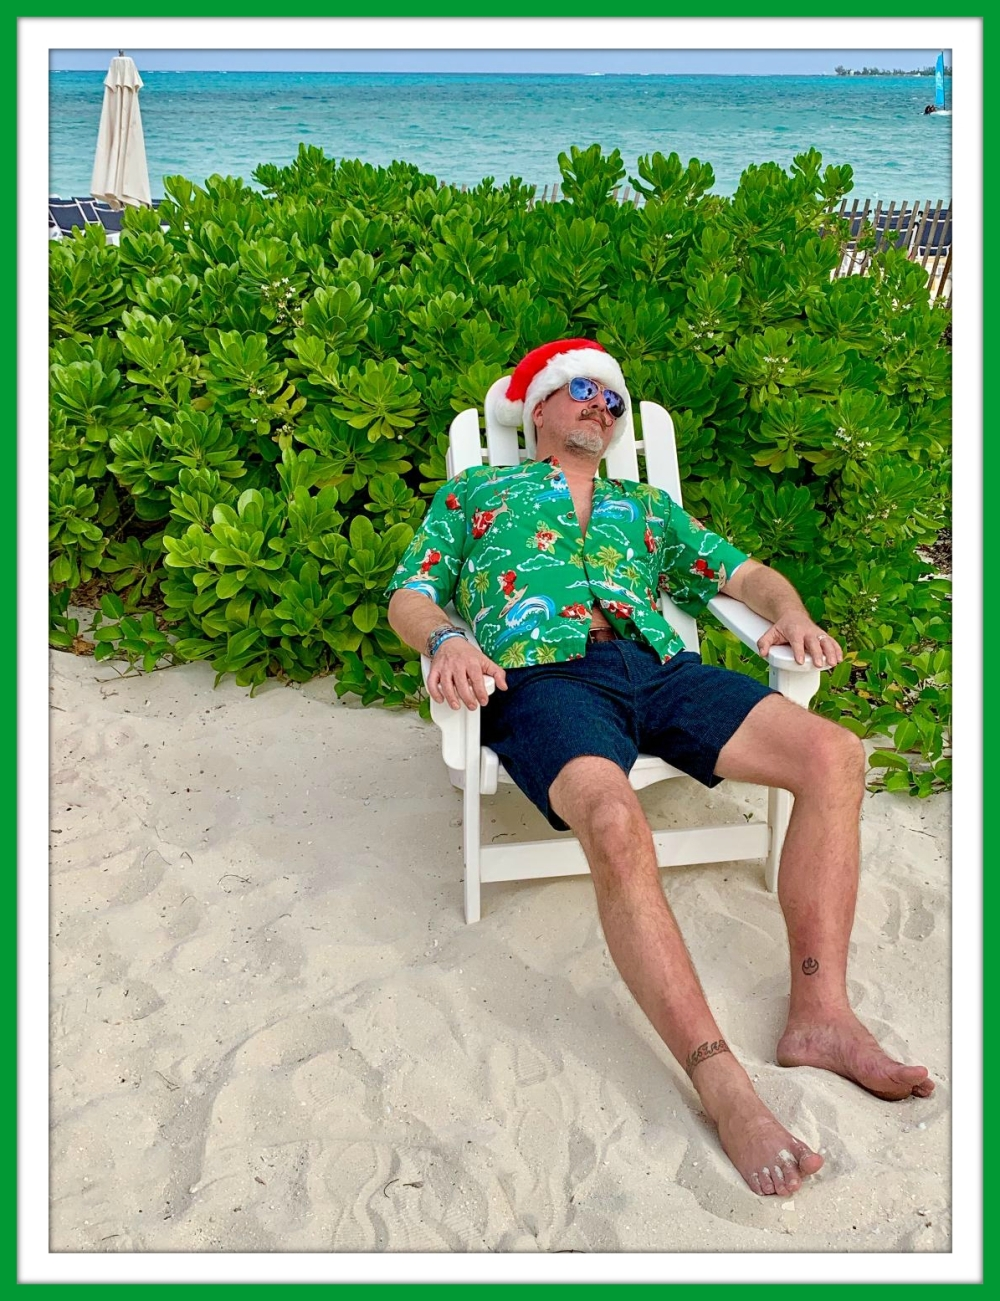 Merry Christmas from The Bahamas